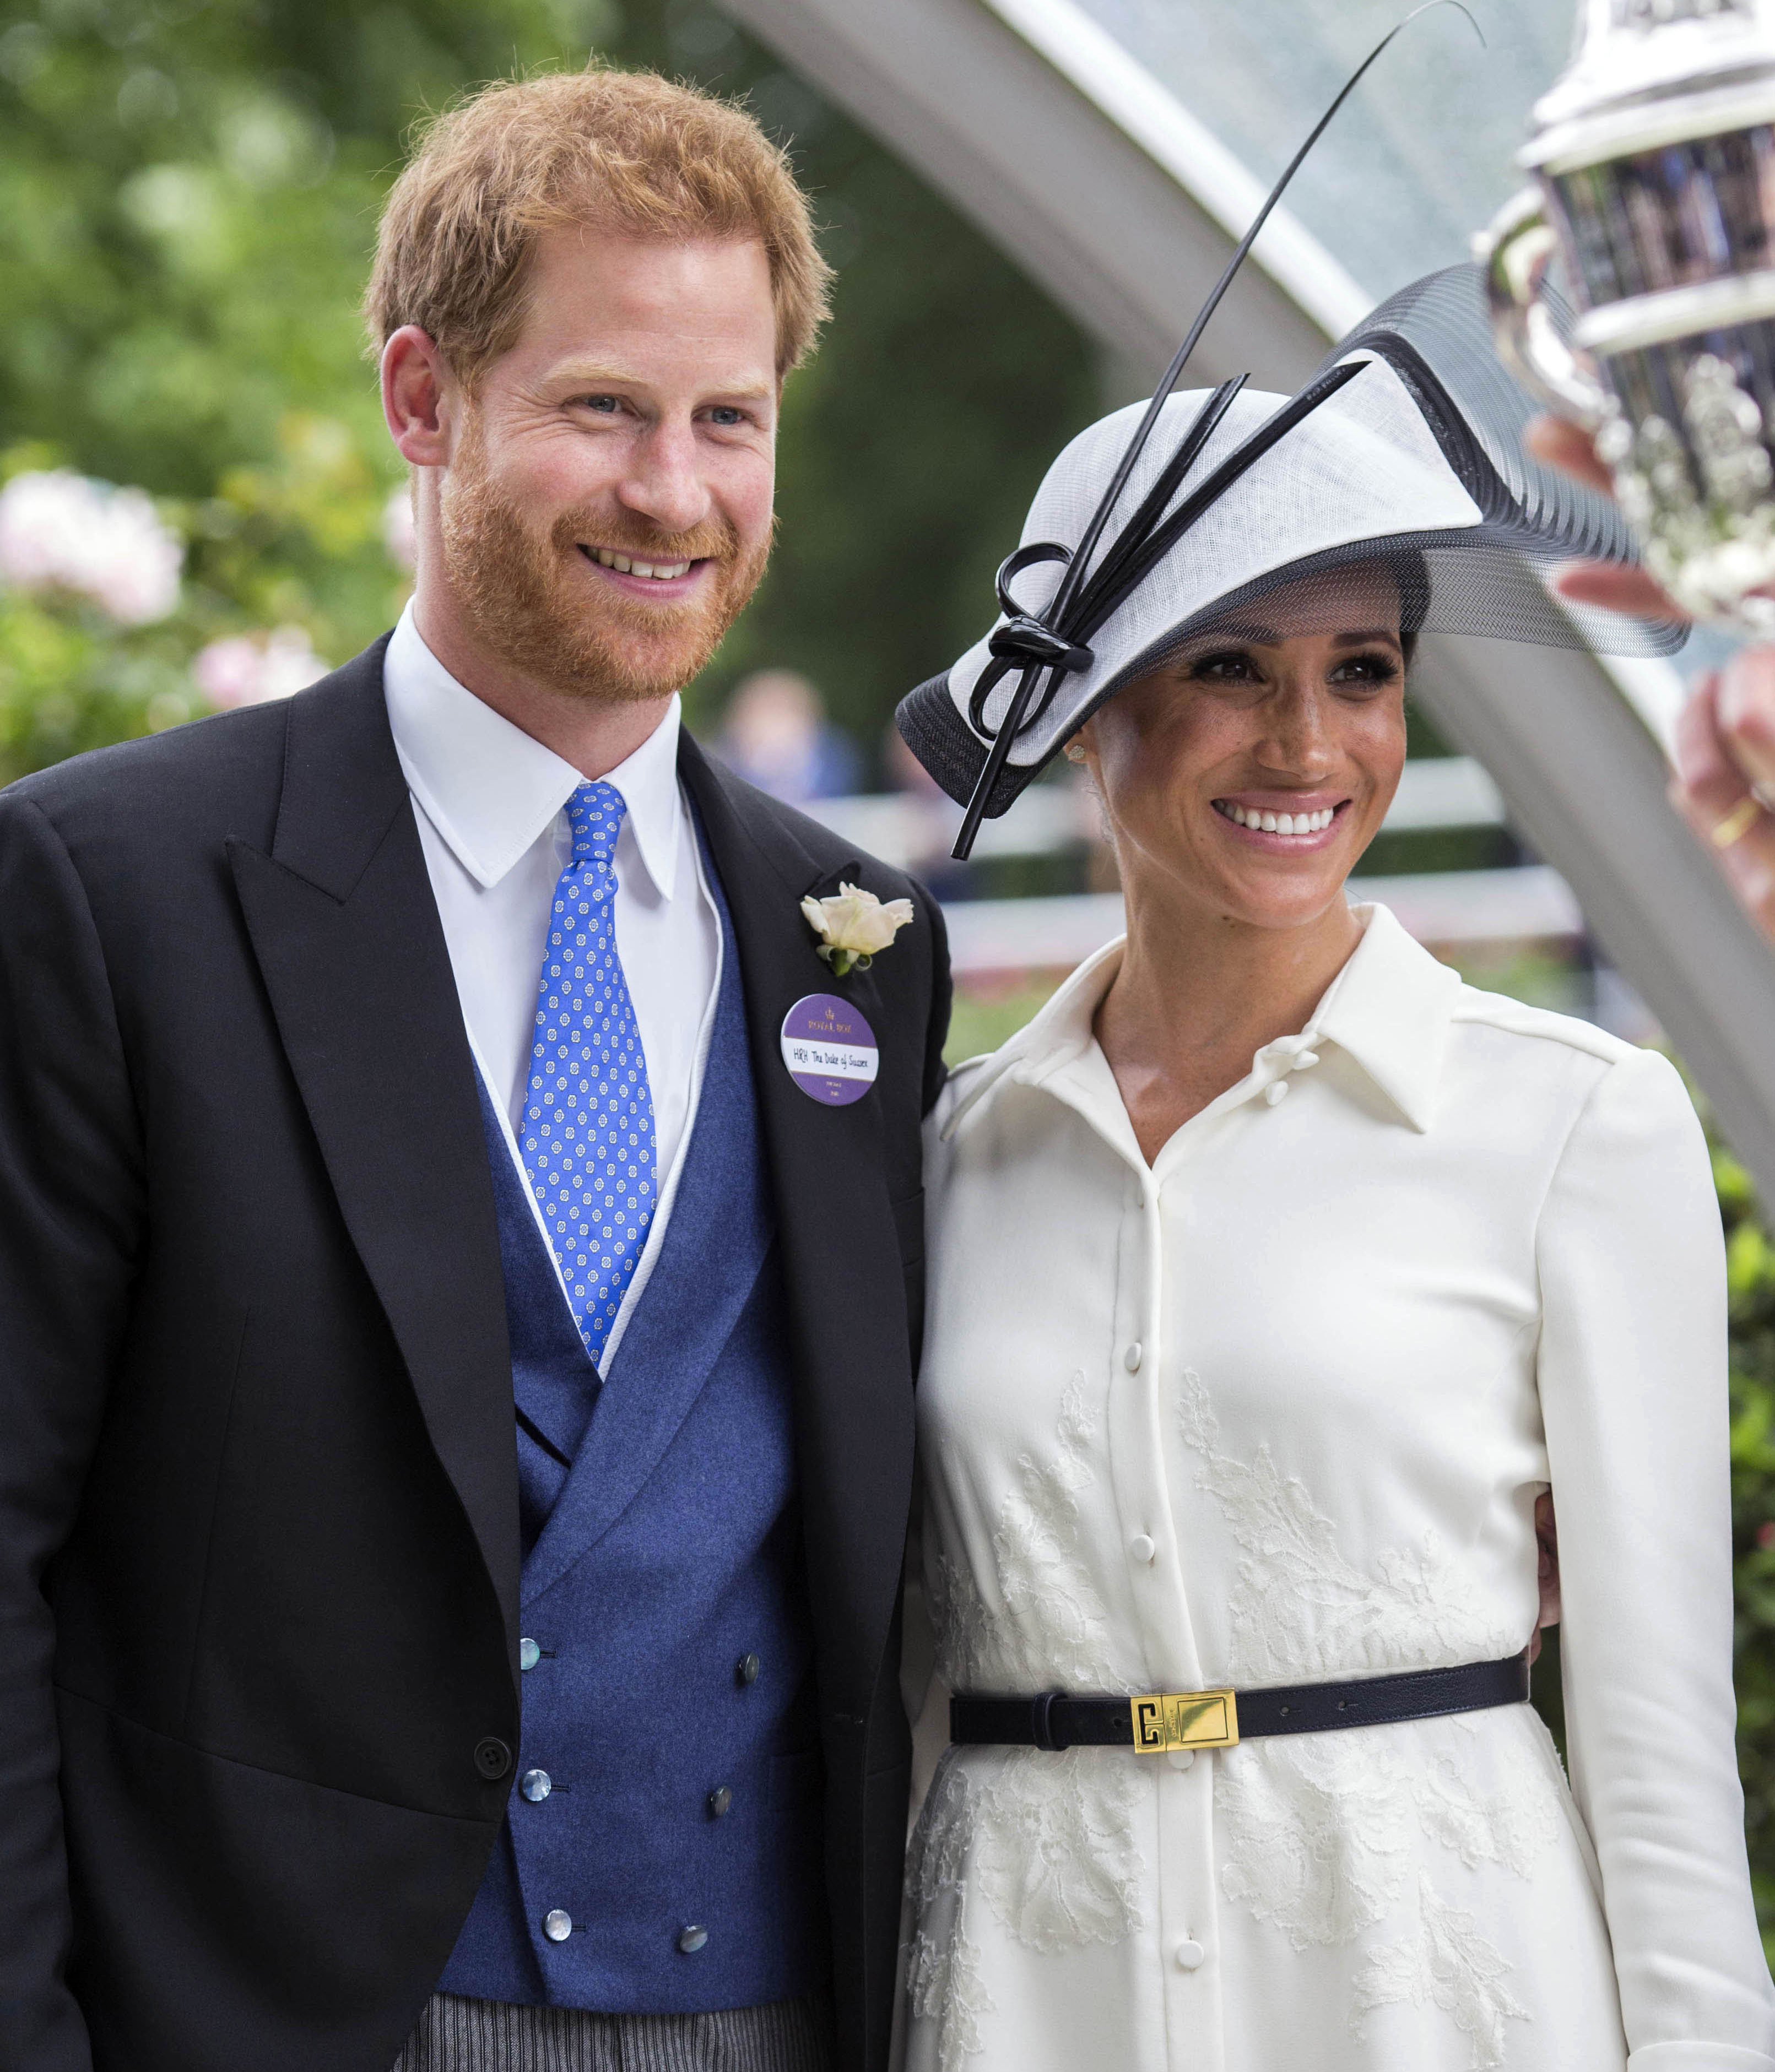 """February 20th 2020 - Prince Harry and Duchess Meghan will formally step down as senior royals on March 31st 2020 as the agreement reached between Queen Elizabeth II and the couple becomes official. - January 20th 2020 - Buckingham Palace has announced that Prince Harry and Duchess Meghan will no longer use """"royal highness"""" titles and will not receive public money for their royal duties. Additionally, as part of the terms of surrendering their royal responsibilities, Harry and Meghan will repay the $3.1 million cost of taxpayers' money that was spent renovating Frogmore Cottage - their home near Windsor Castle. - January 9th 2020 - Prince Harry The Duke of Sussex and Duchess Meghan of Sussex intend to step back their duties and responsibilities as senior members of the British Royal Family. - File Photo by: zz/KGC-107/STAR MAX/IPx 2018 6/19/18 Prince Harry The Duke of Sussex and Meghan The Duchess of Sussex at Royal Ascot Day One at Ascot Racecourse. (Berkshire, England, UK)"""